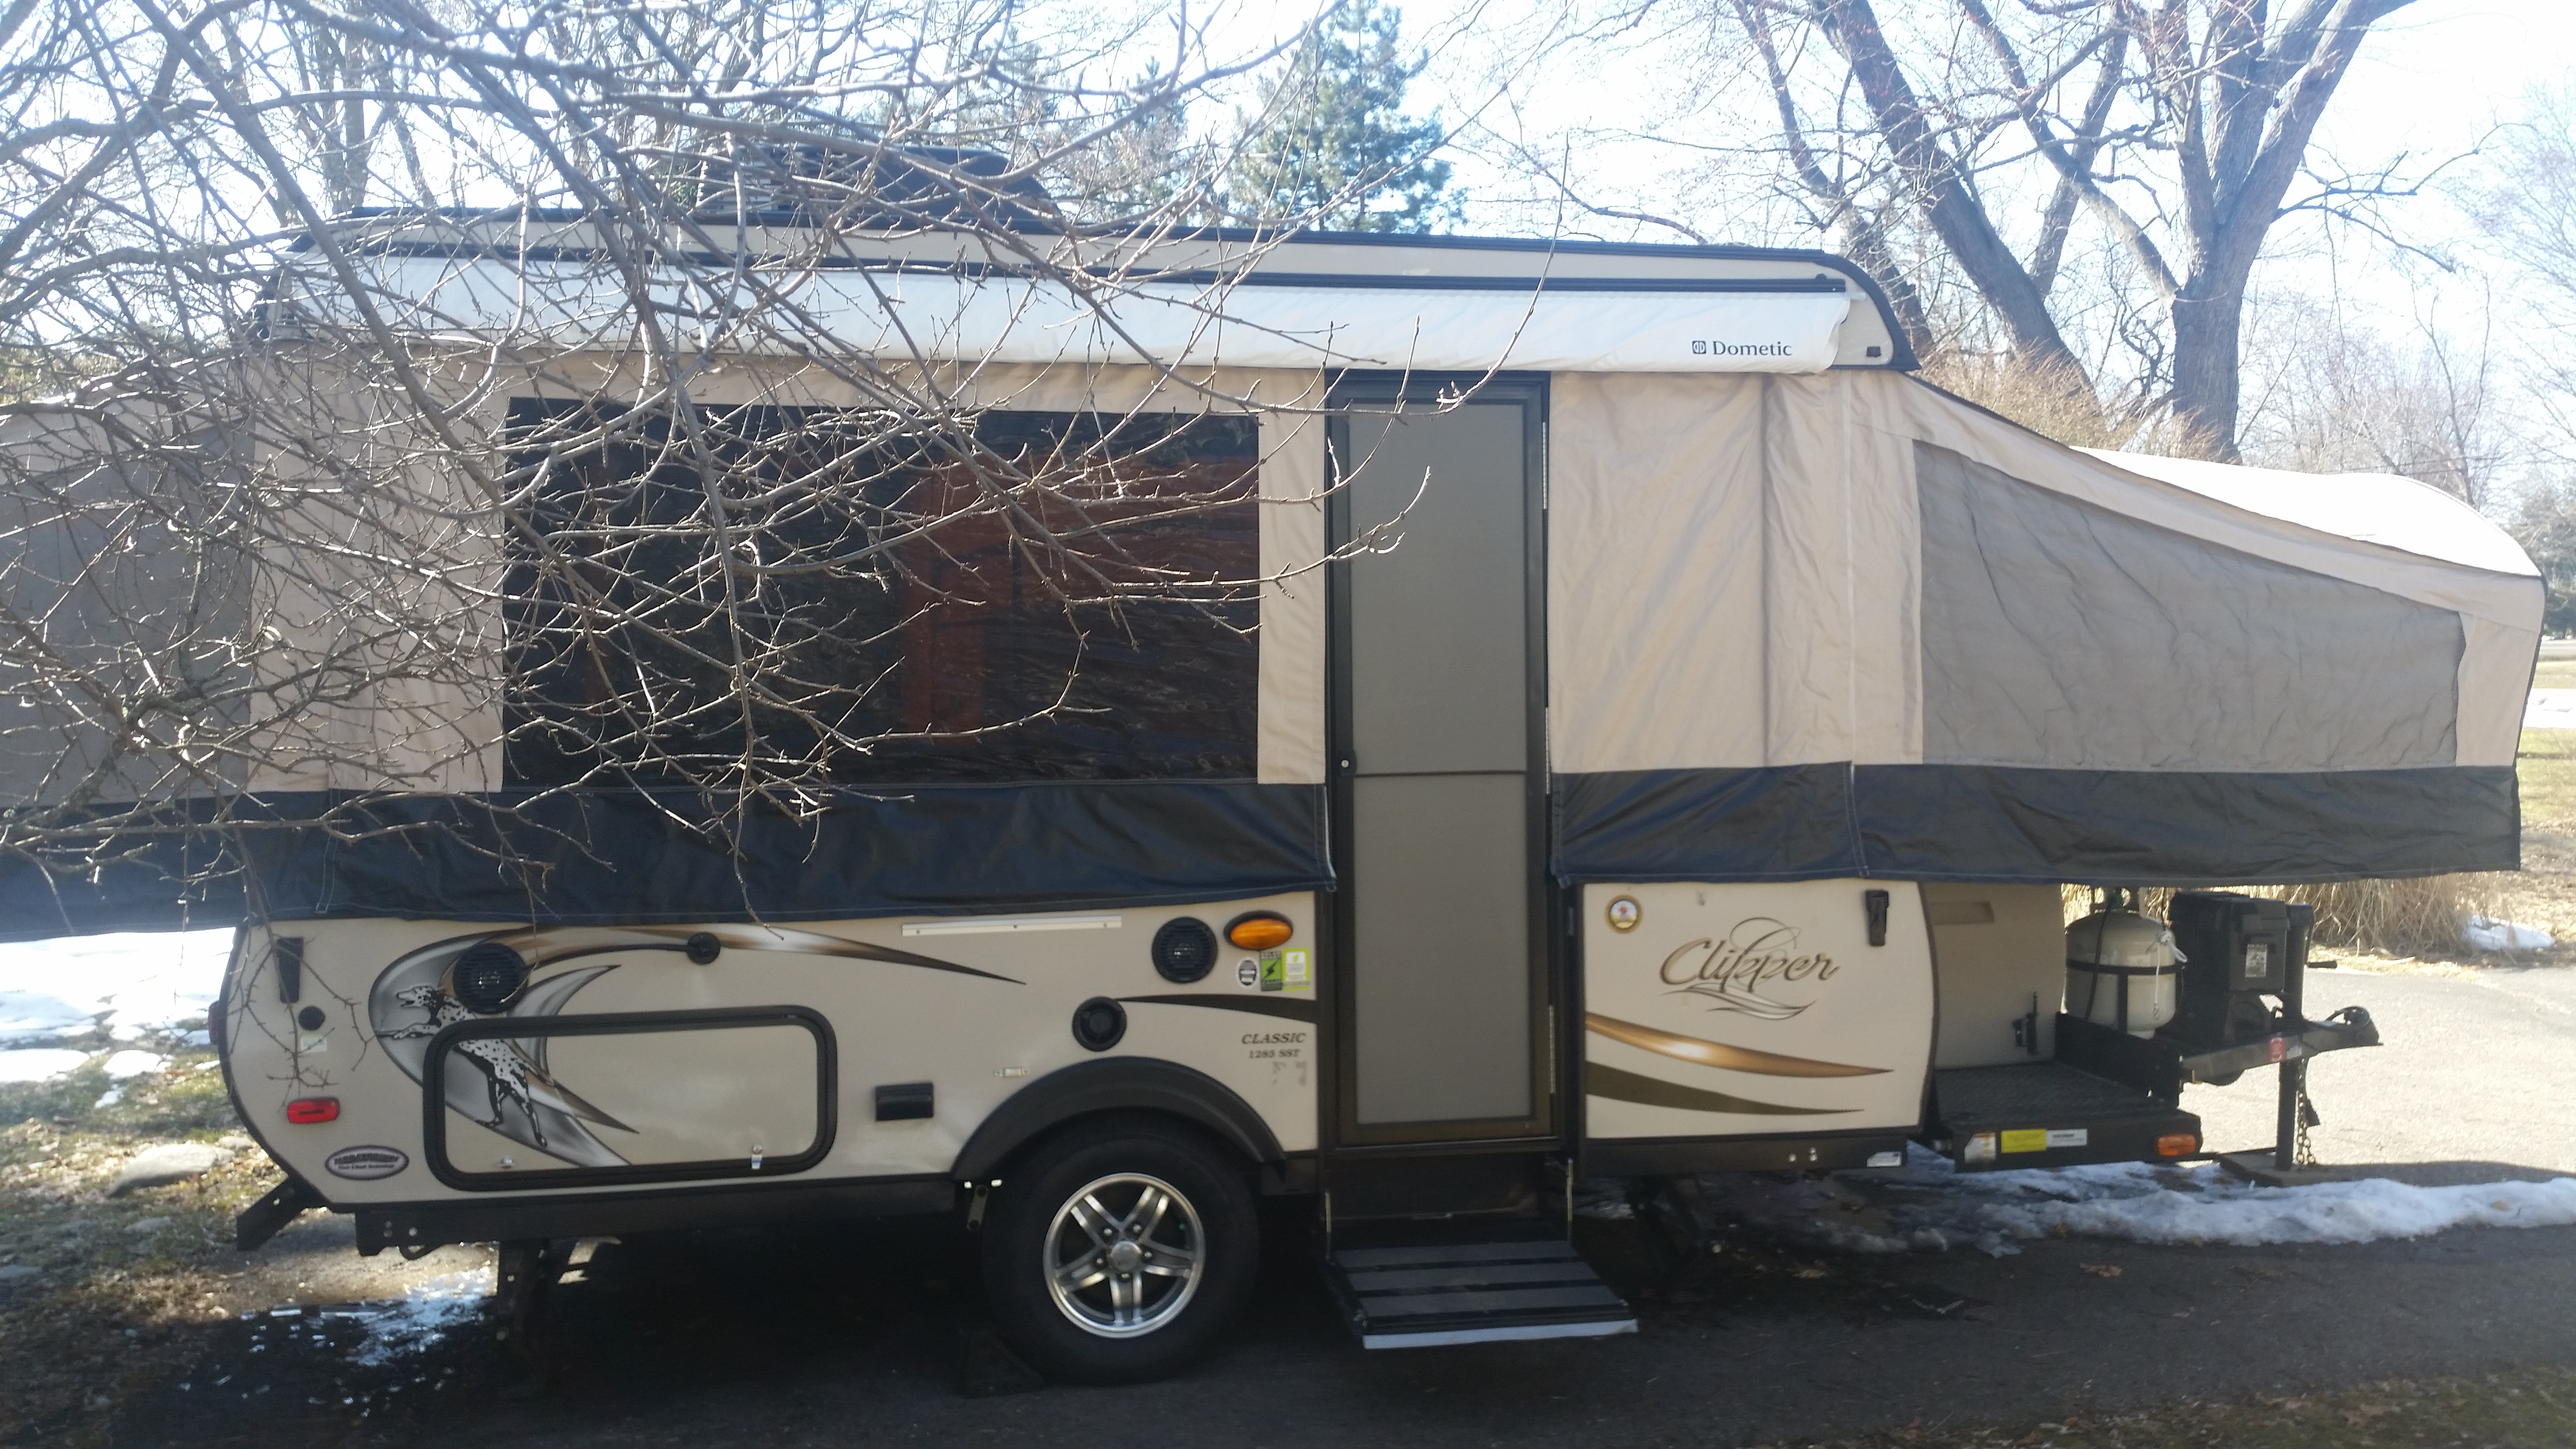 easy set up with an awning, not extended in the photo, but we'll show you how to set it up when you pick up the Clipper!. Coachmen Clipper 2016